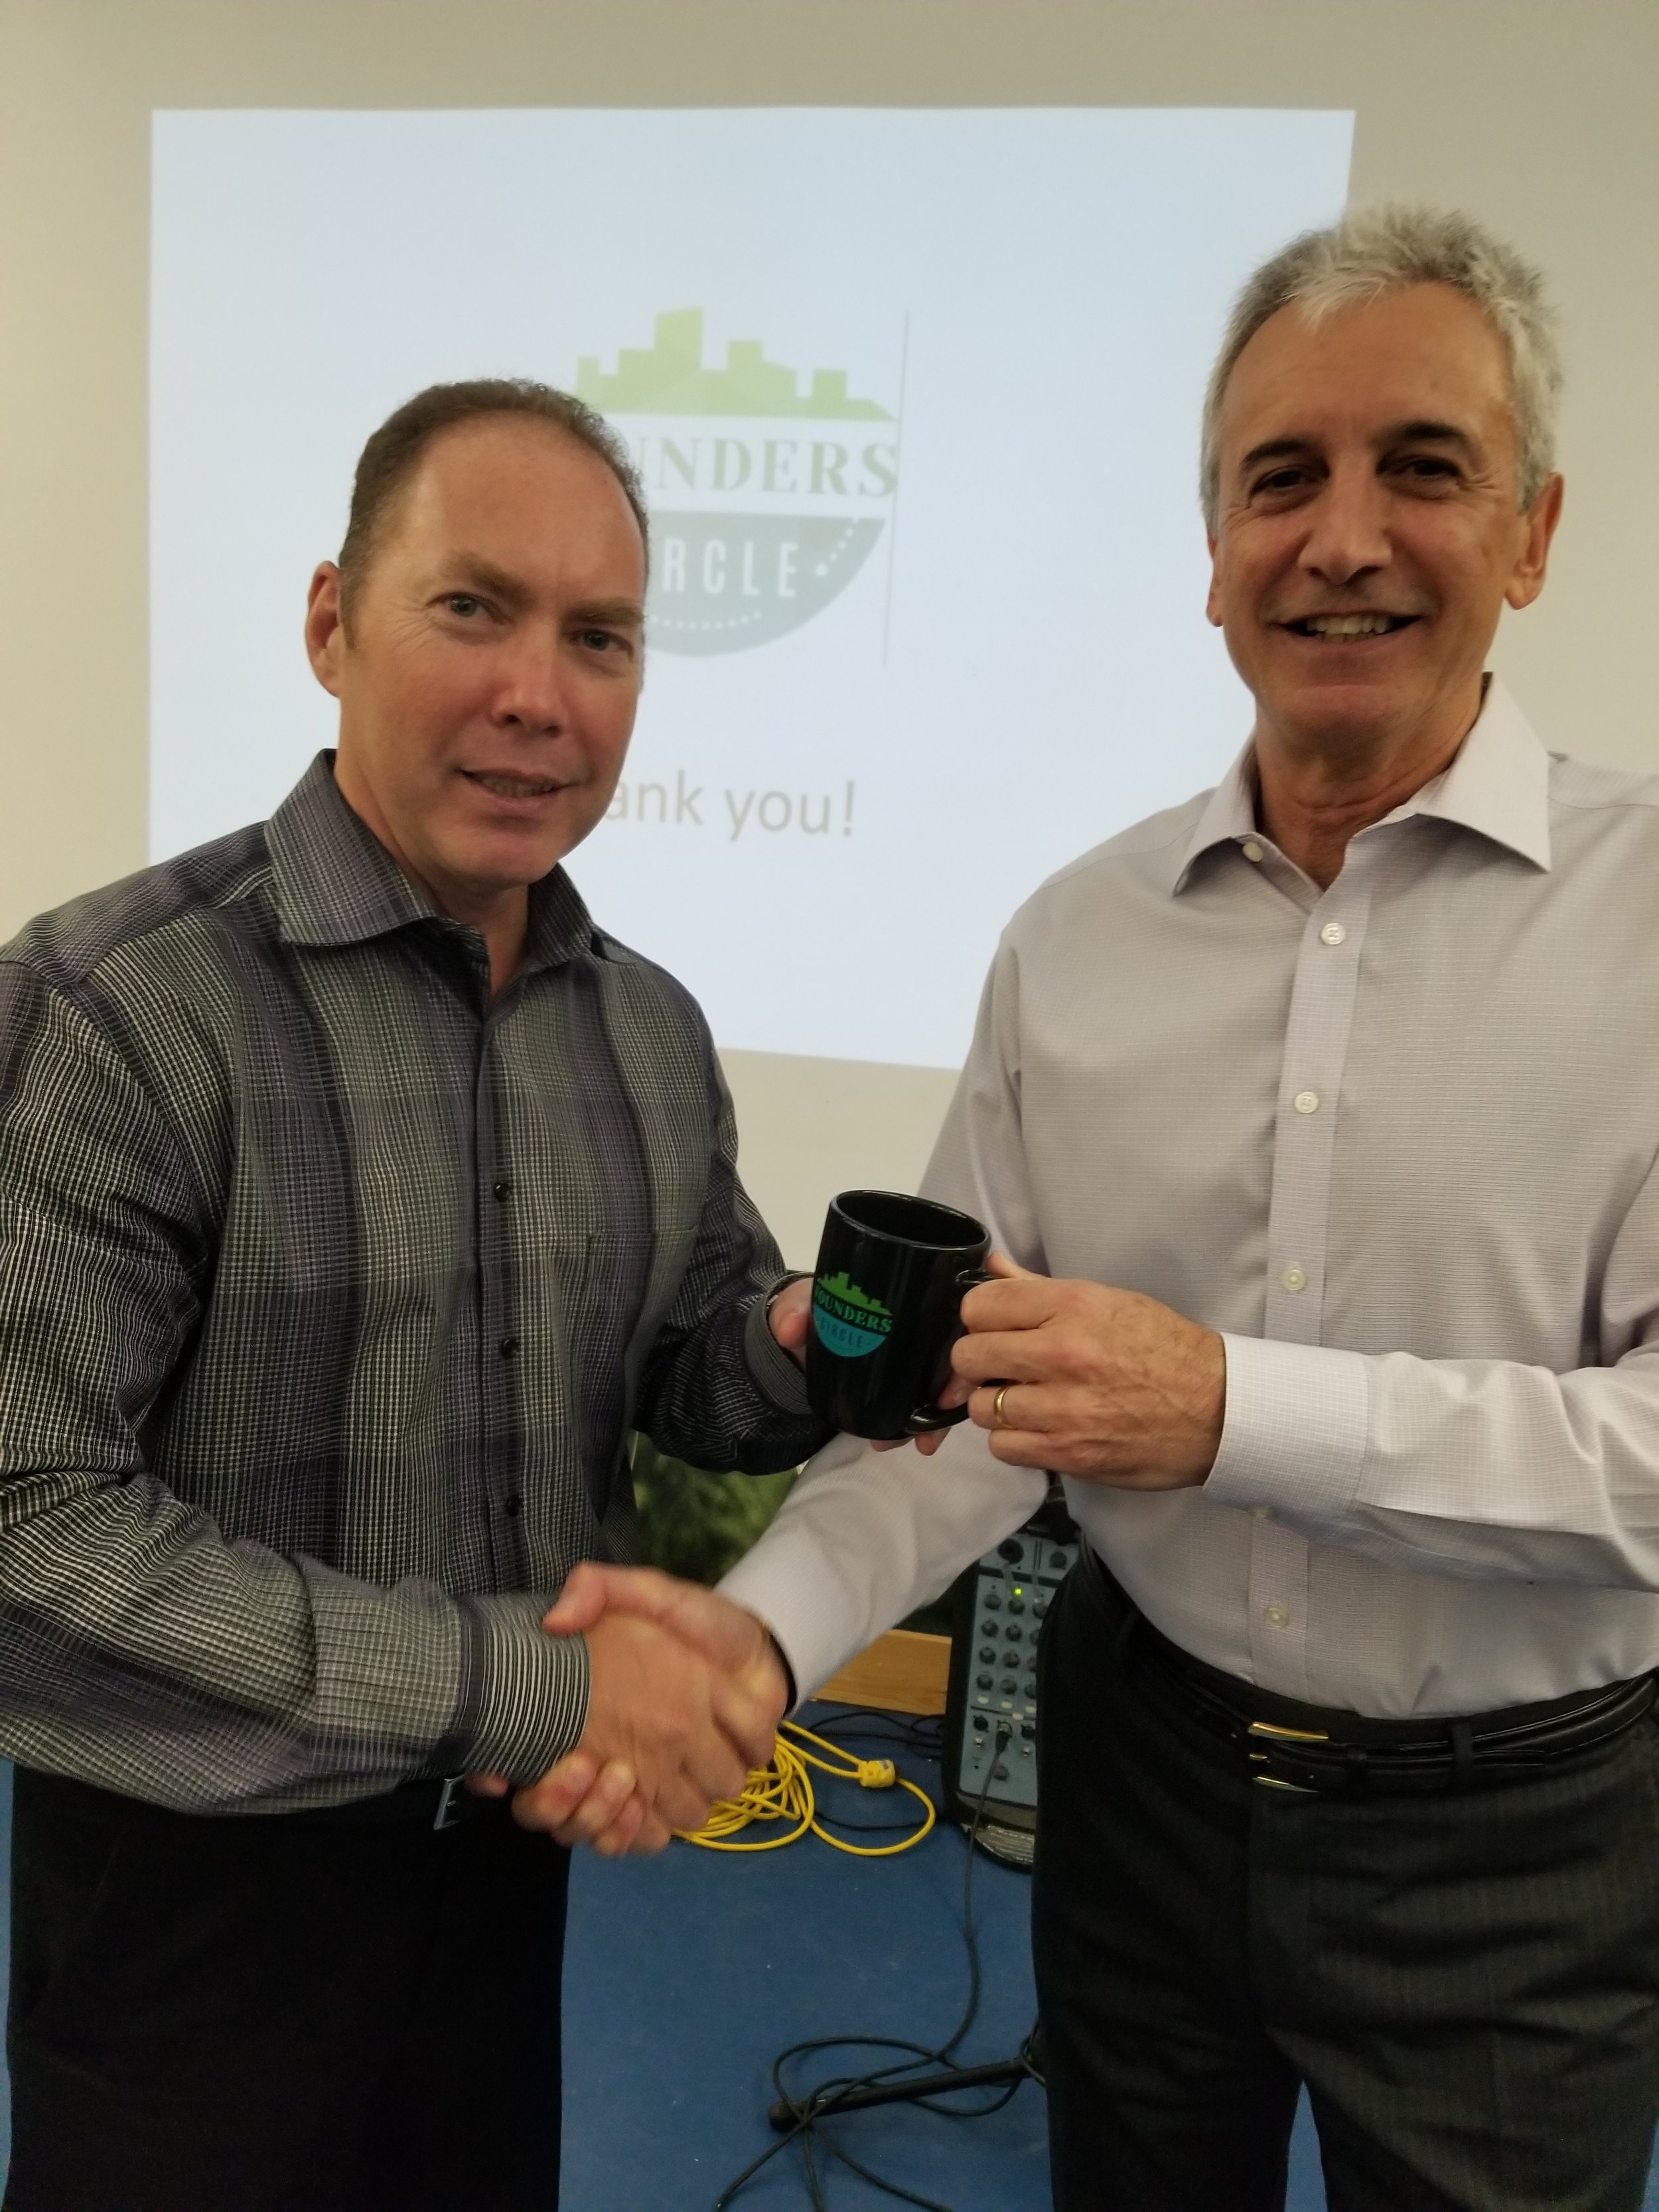 Karl Smith from Scotiabank, and Gravenhurst Rotary Club rep on Founders Circle receiving a Founders Circle gift mug from Executive Chair Rick Dalmazzi after Rick provided a presentation to the Rotary Club on the results of the first year of Founders Circle.